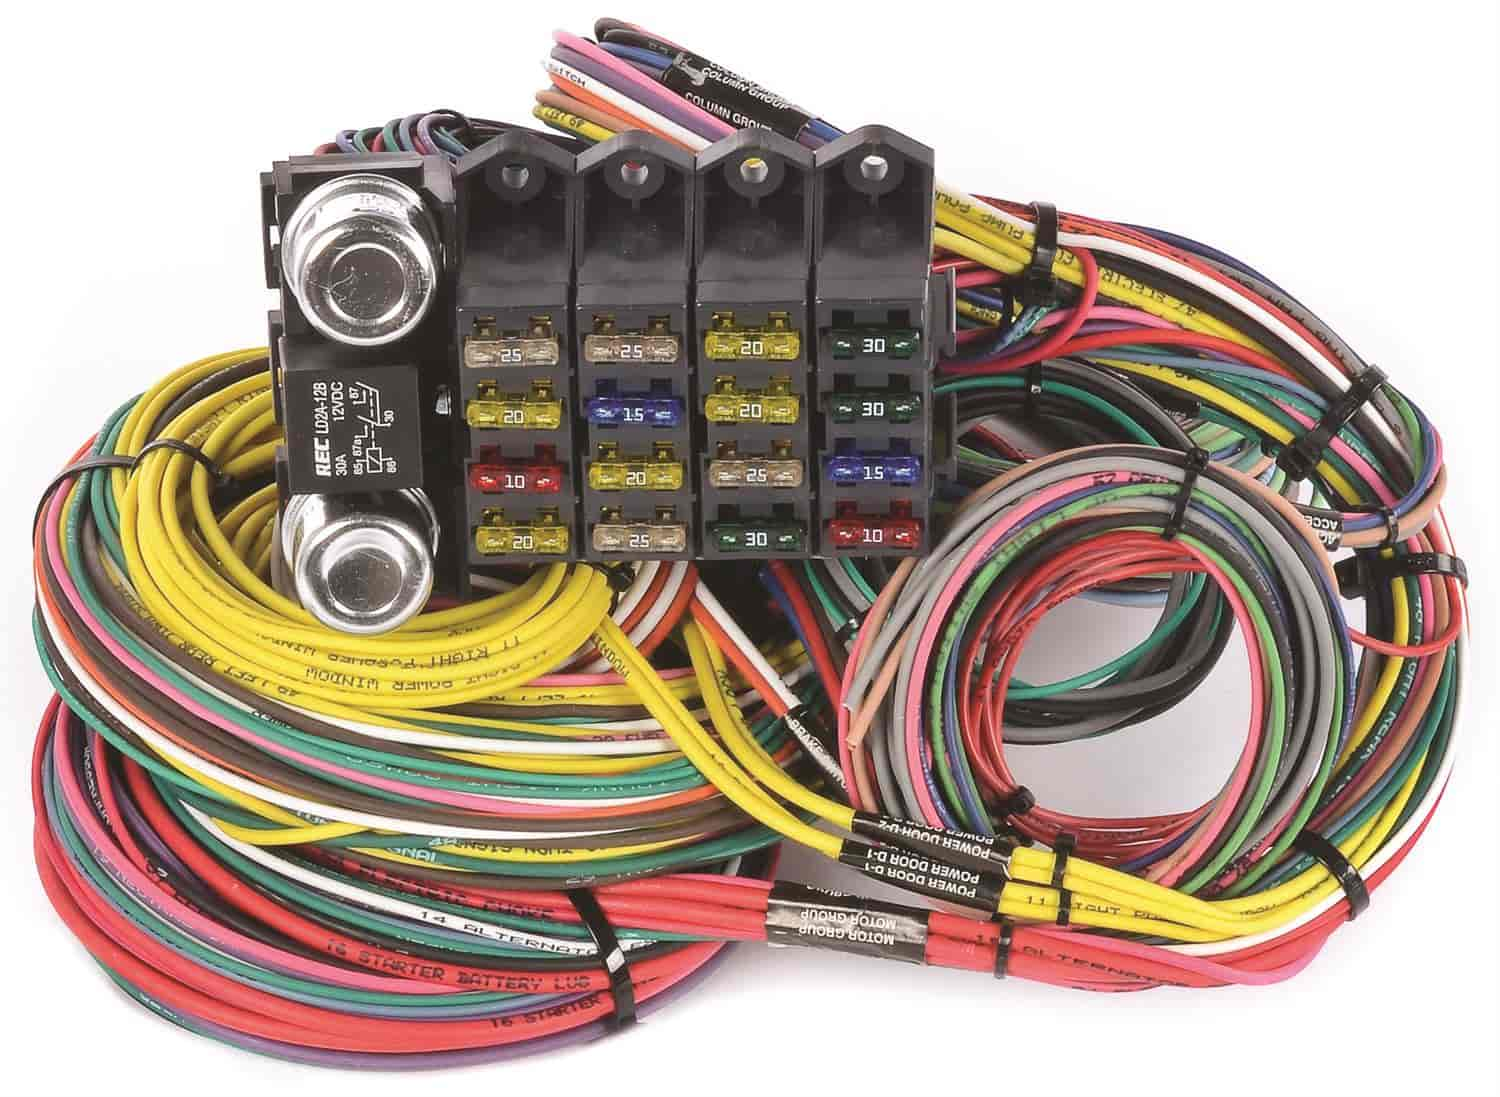 555 10405 jegs performance products 10405 universal wiring harness, 20  at panicattacktreatment.co